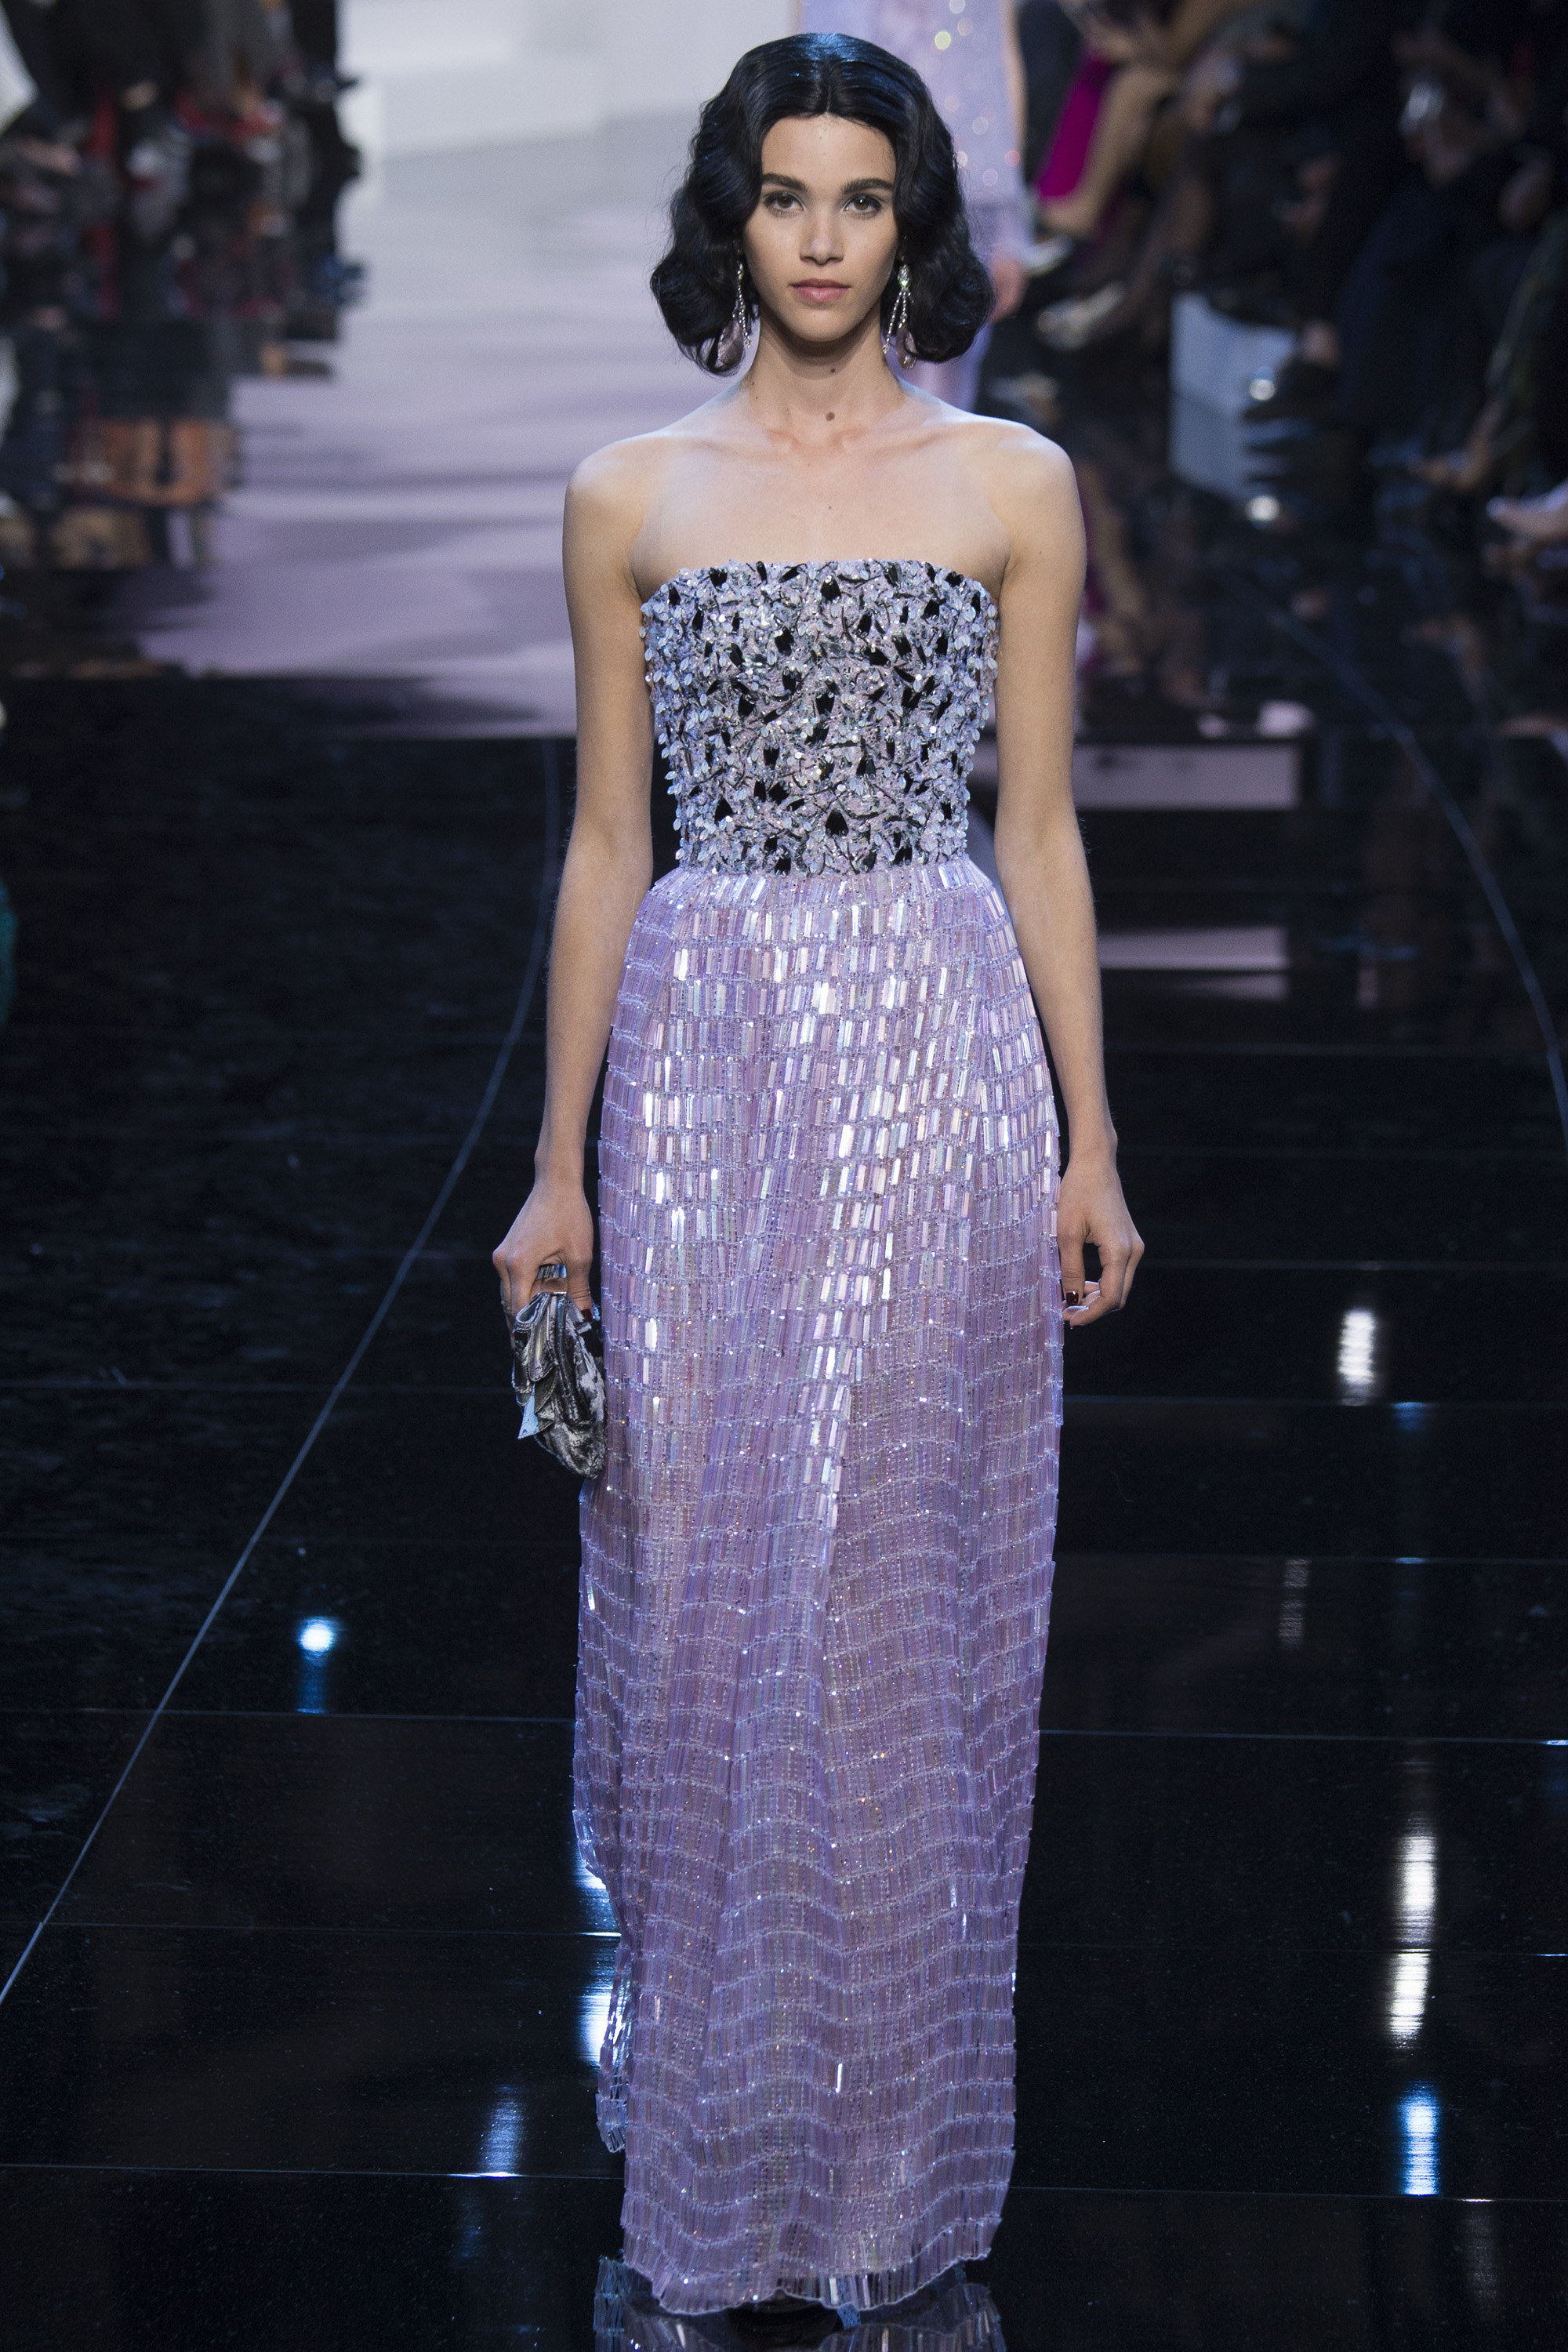 Armani-Prive-Couture-Spring-2016-15.jpg